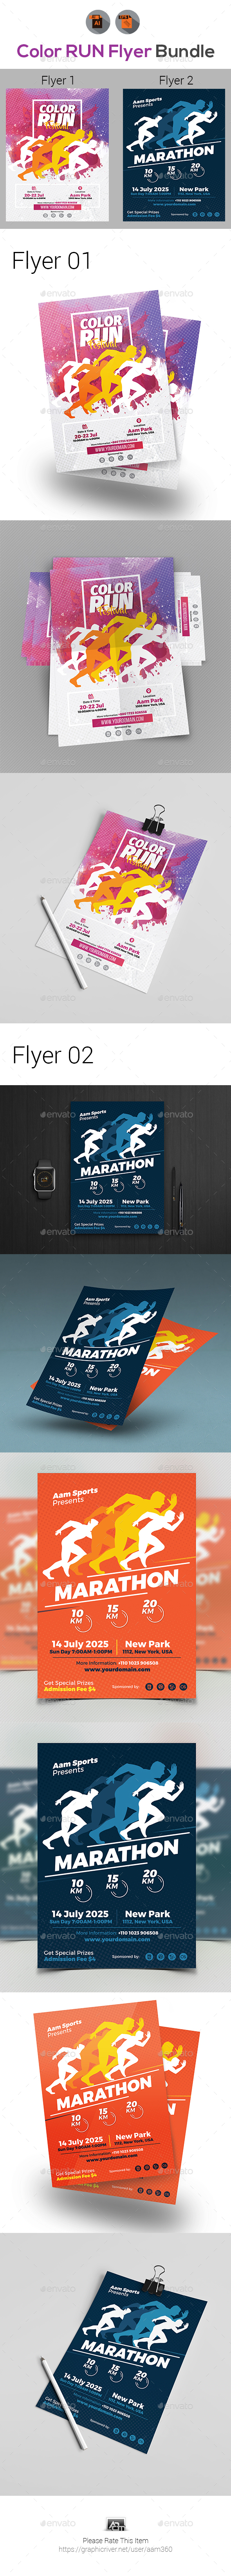 Color Run Festival/Marathon Event Flyer Bundle - Events Flyers